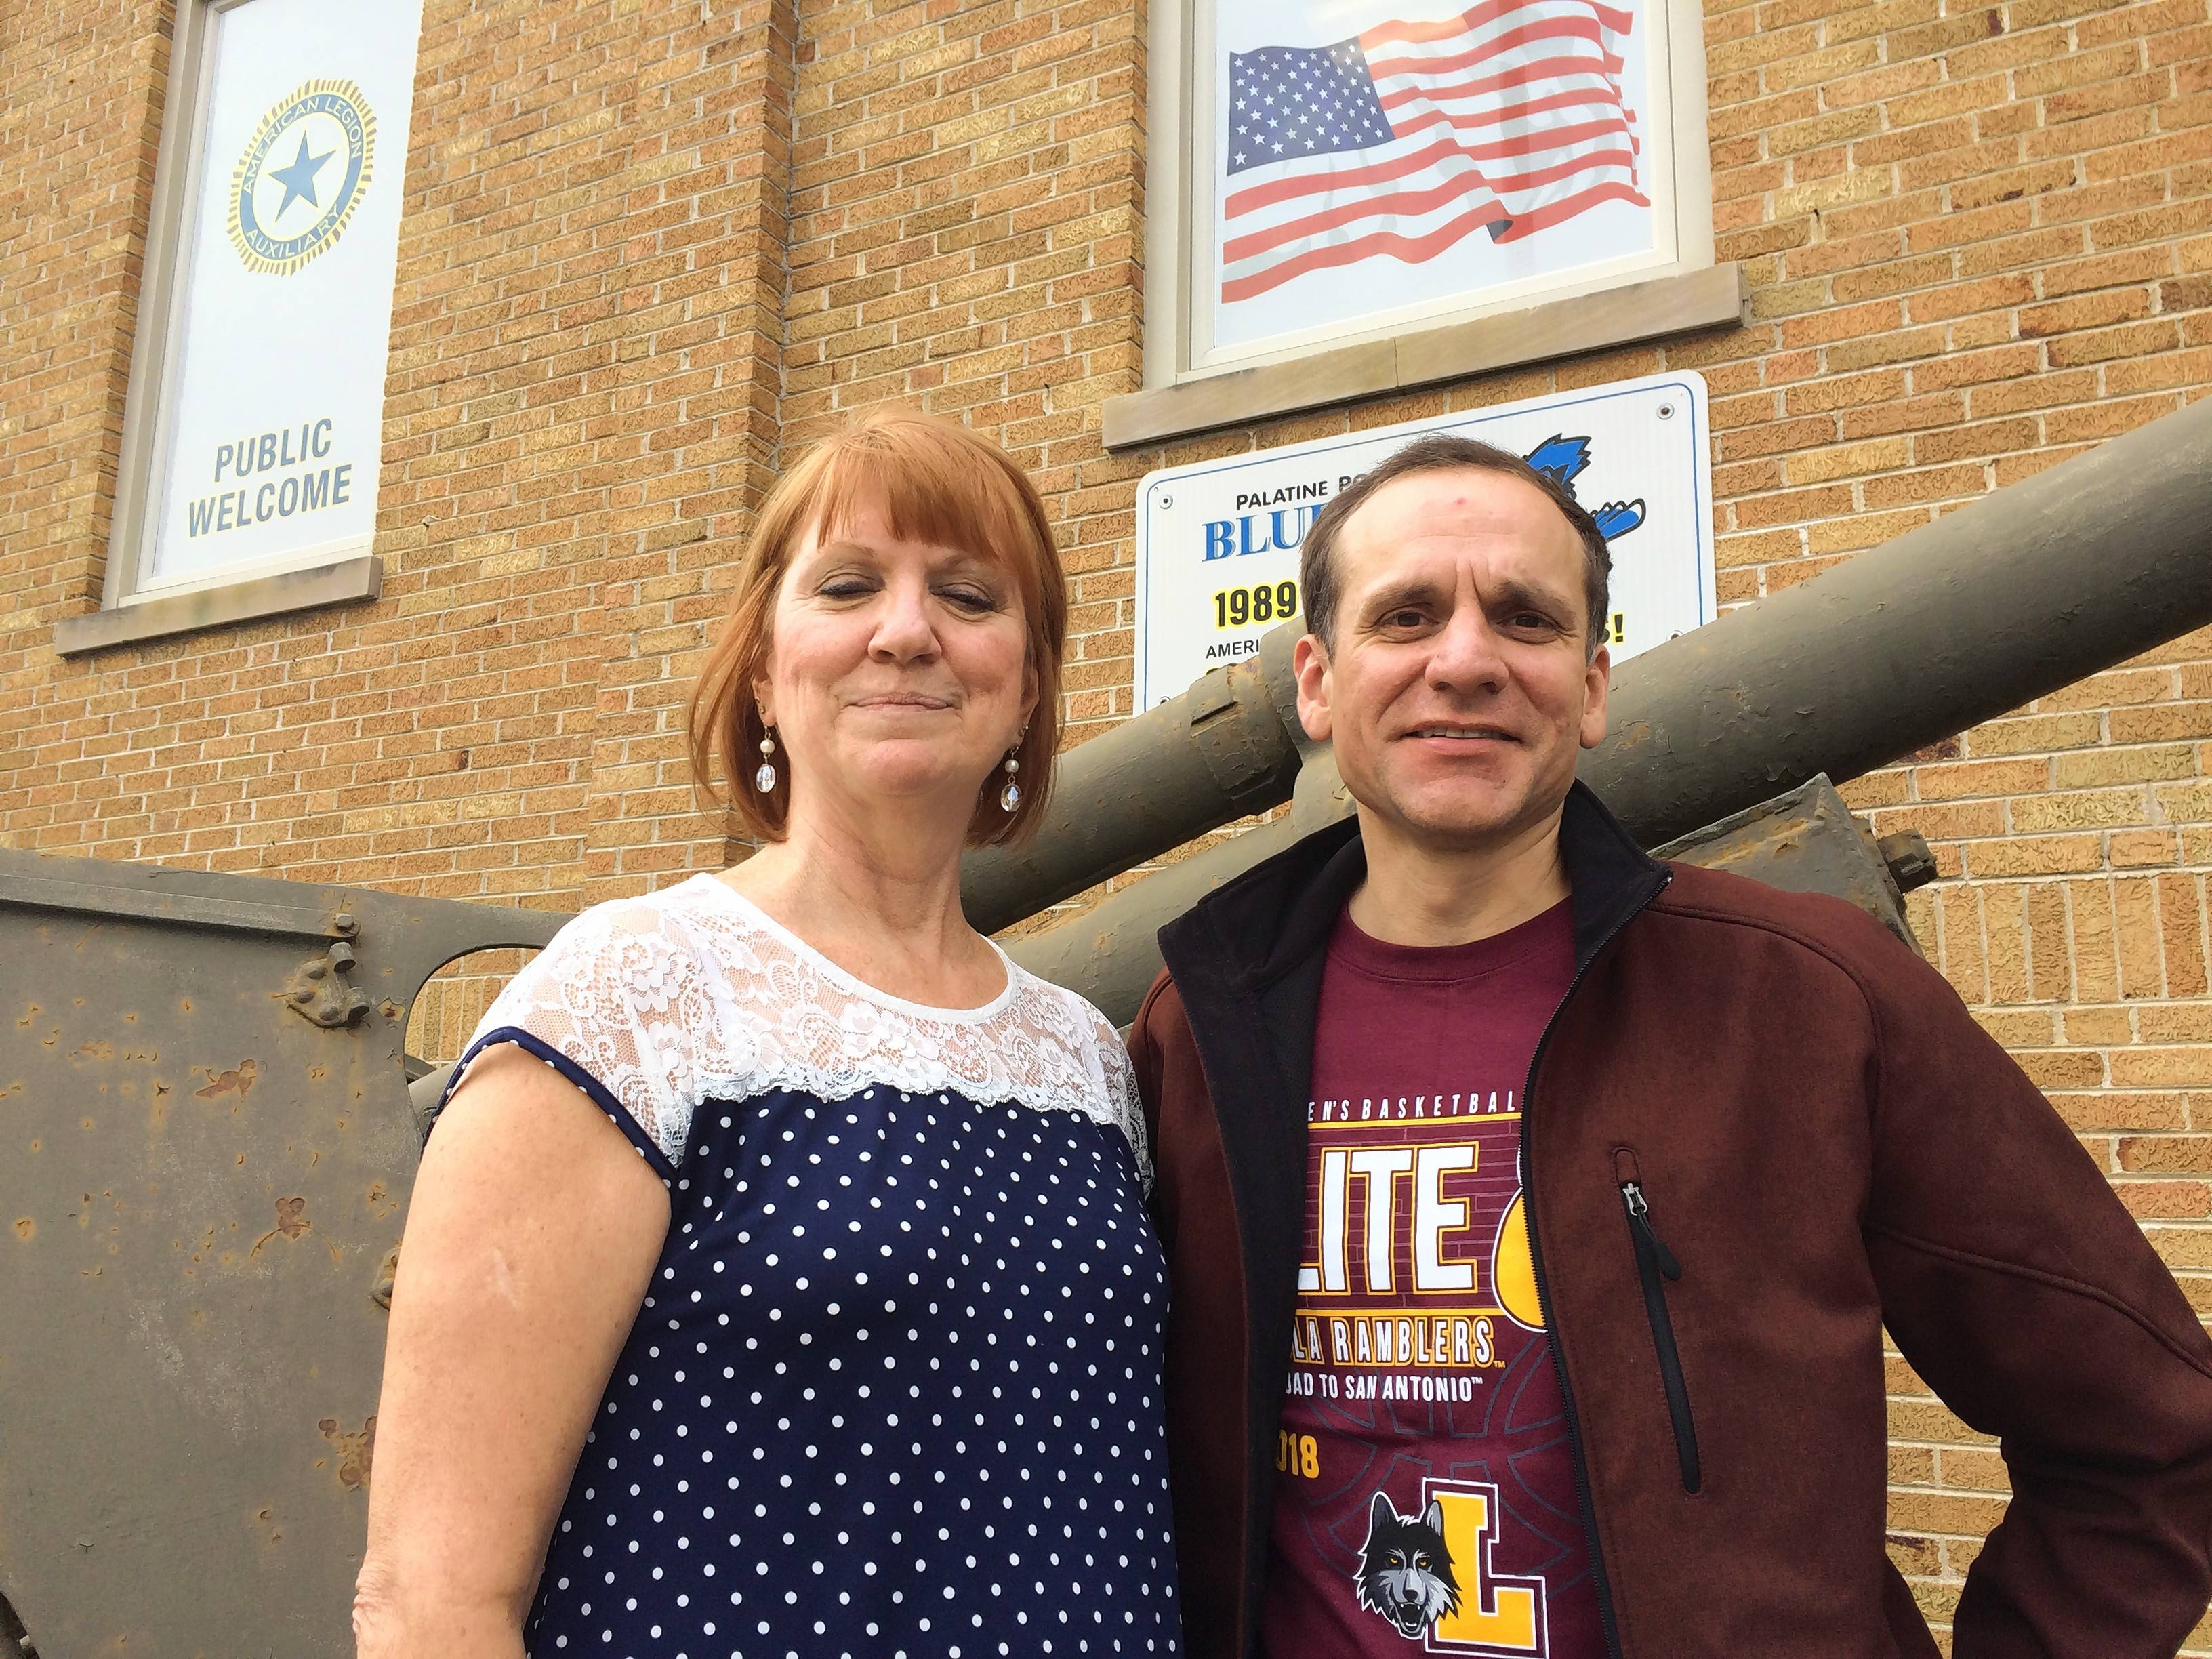 Eileen McKevitt, a member of the Palatine American Legion Post 690 auxiliary and U.S. Navy veteran Ed Behrens, a member there, helped organize an effort that resulted in donations of at least 2,000 household supplies for an organization helping homeless vets move into permanent residences.